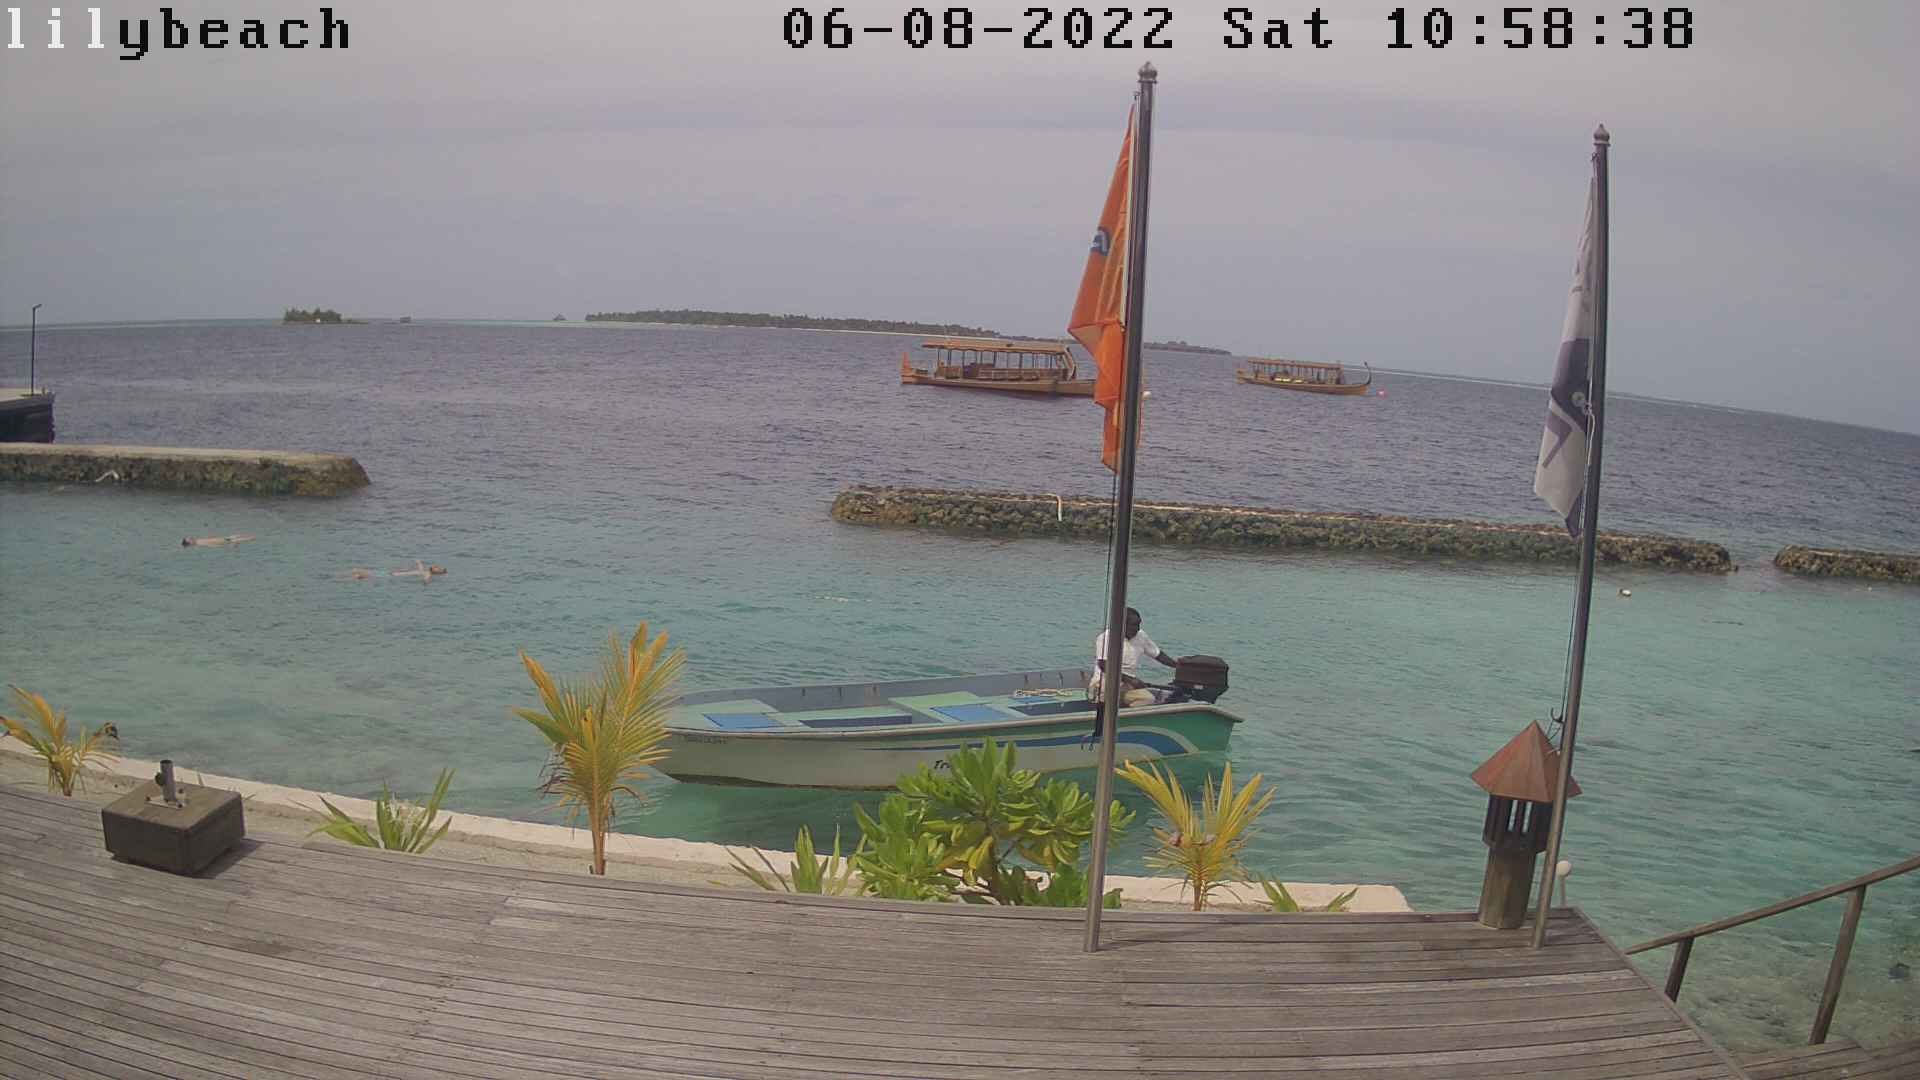 Lily Beach Dive Center Webcam